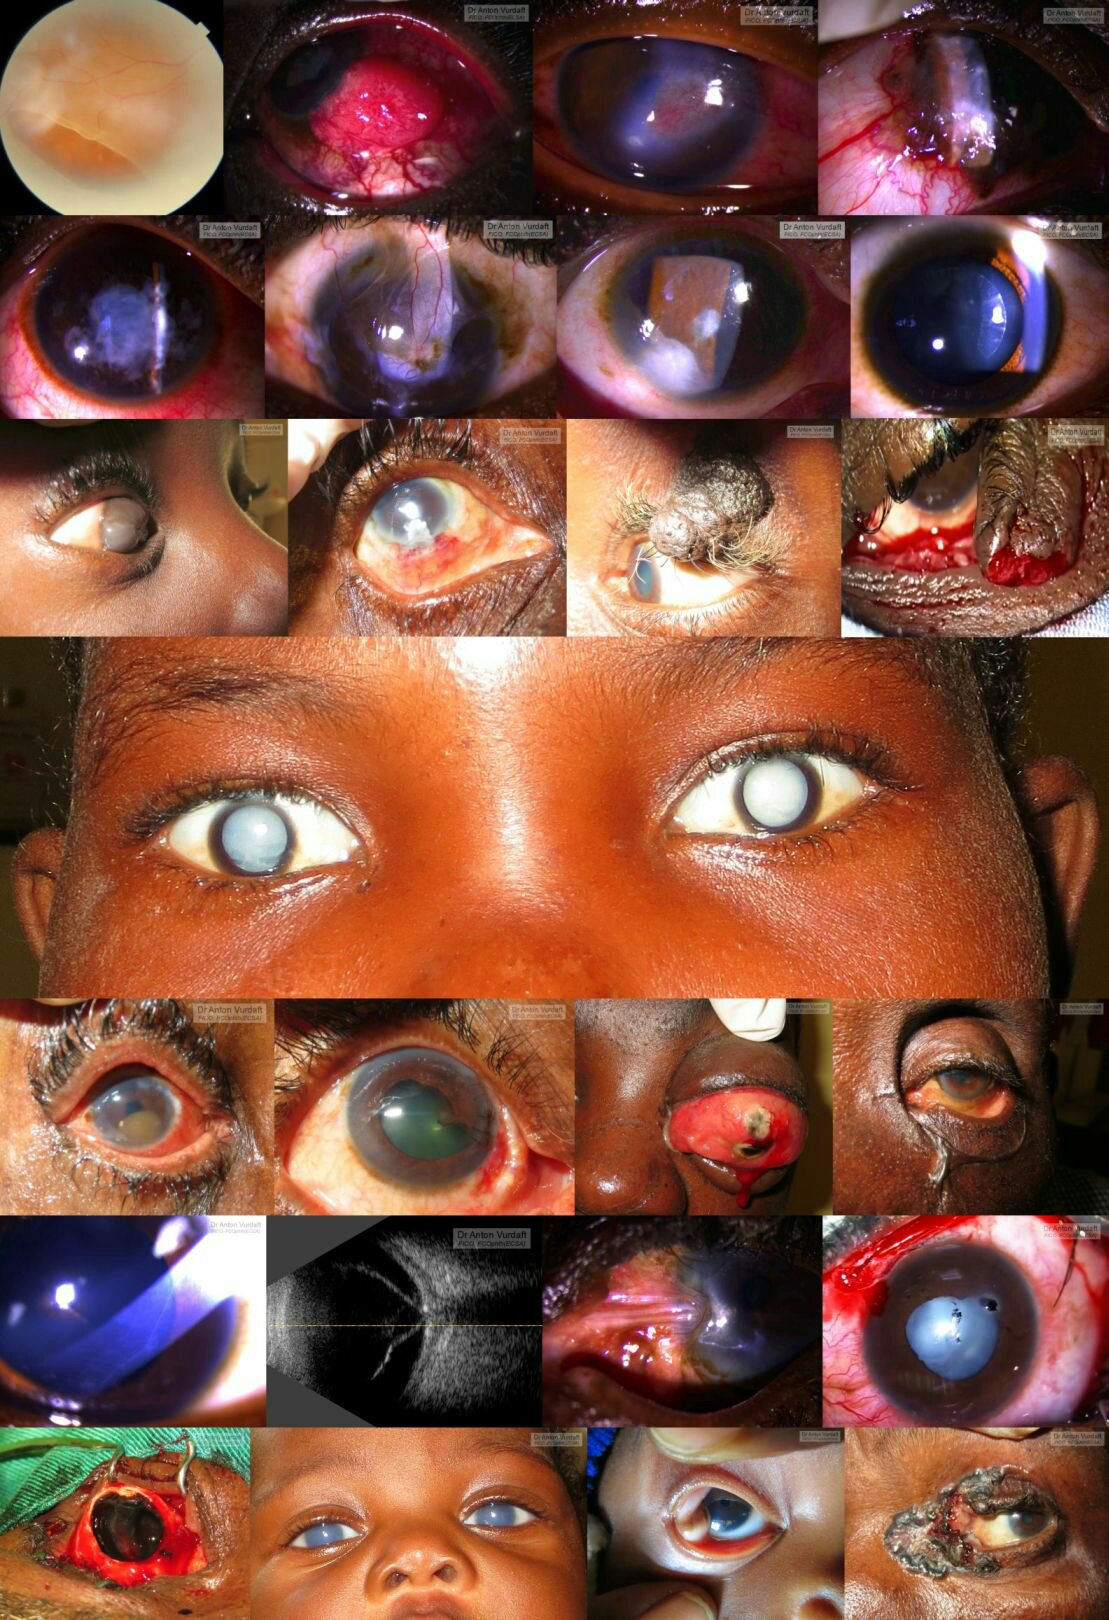 African tropical ophthalmology cases mix